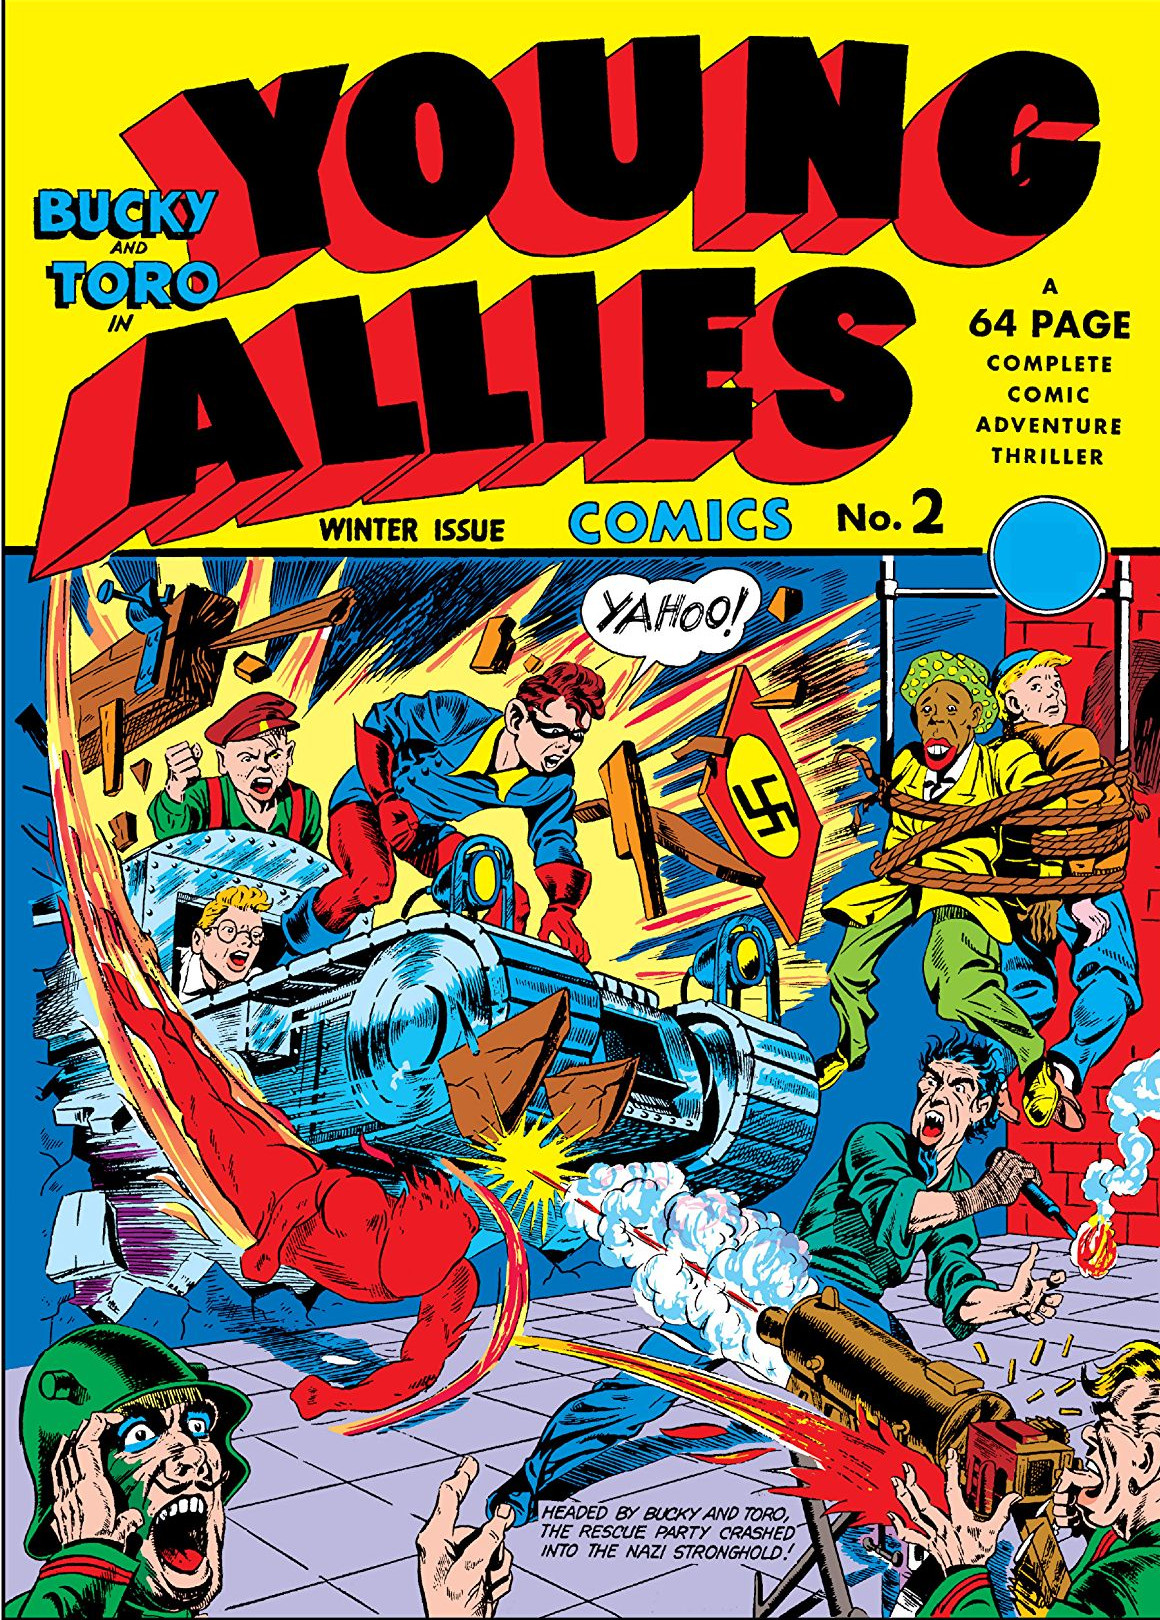 Young Allies Vol 1 2 | Marvel Database | FANDOM powered by Wikia